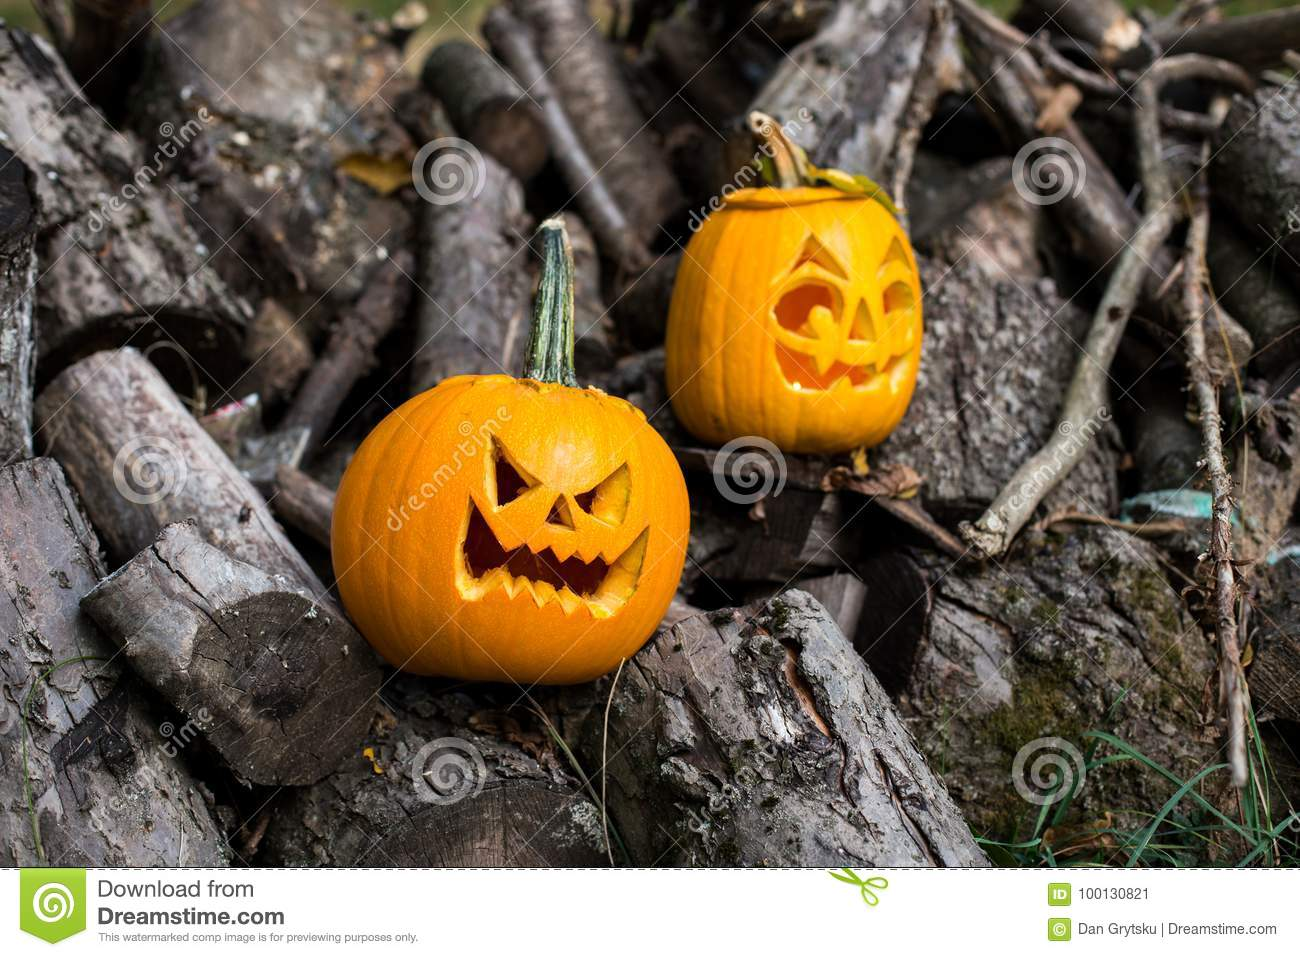 halloween themes composition of two carved halloween pumpkins on